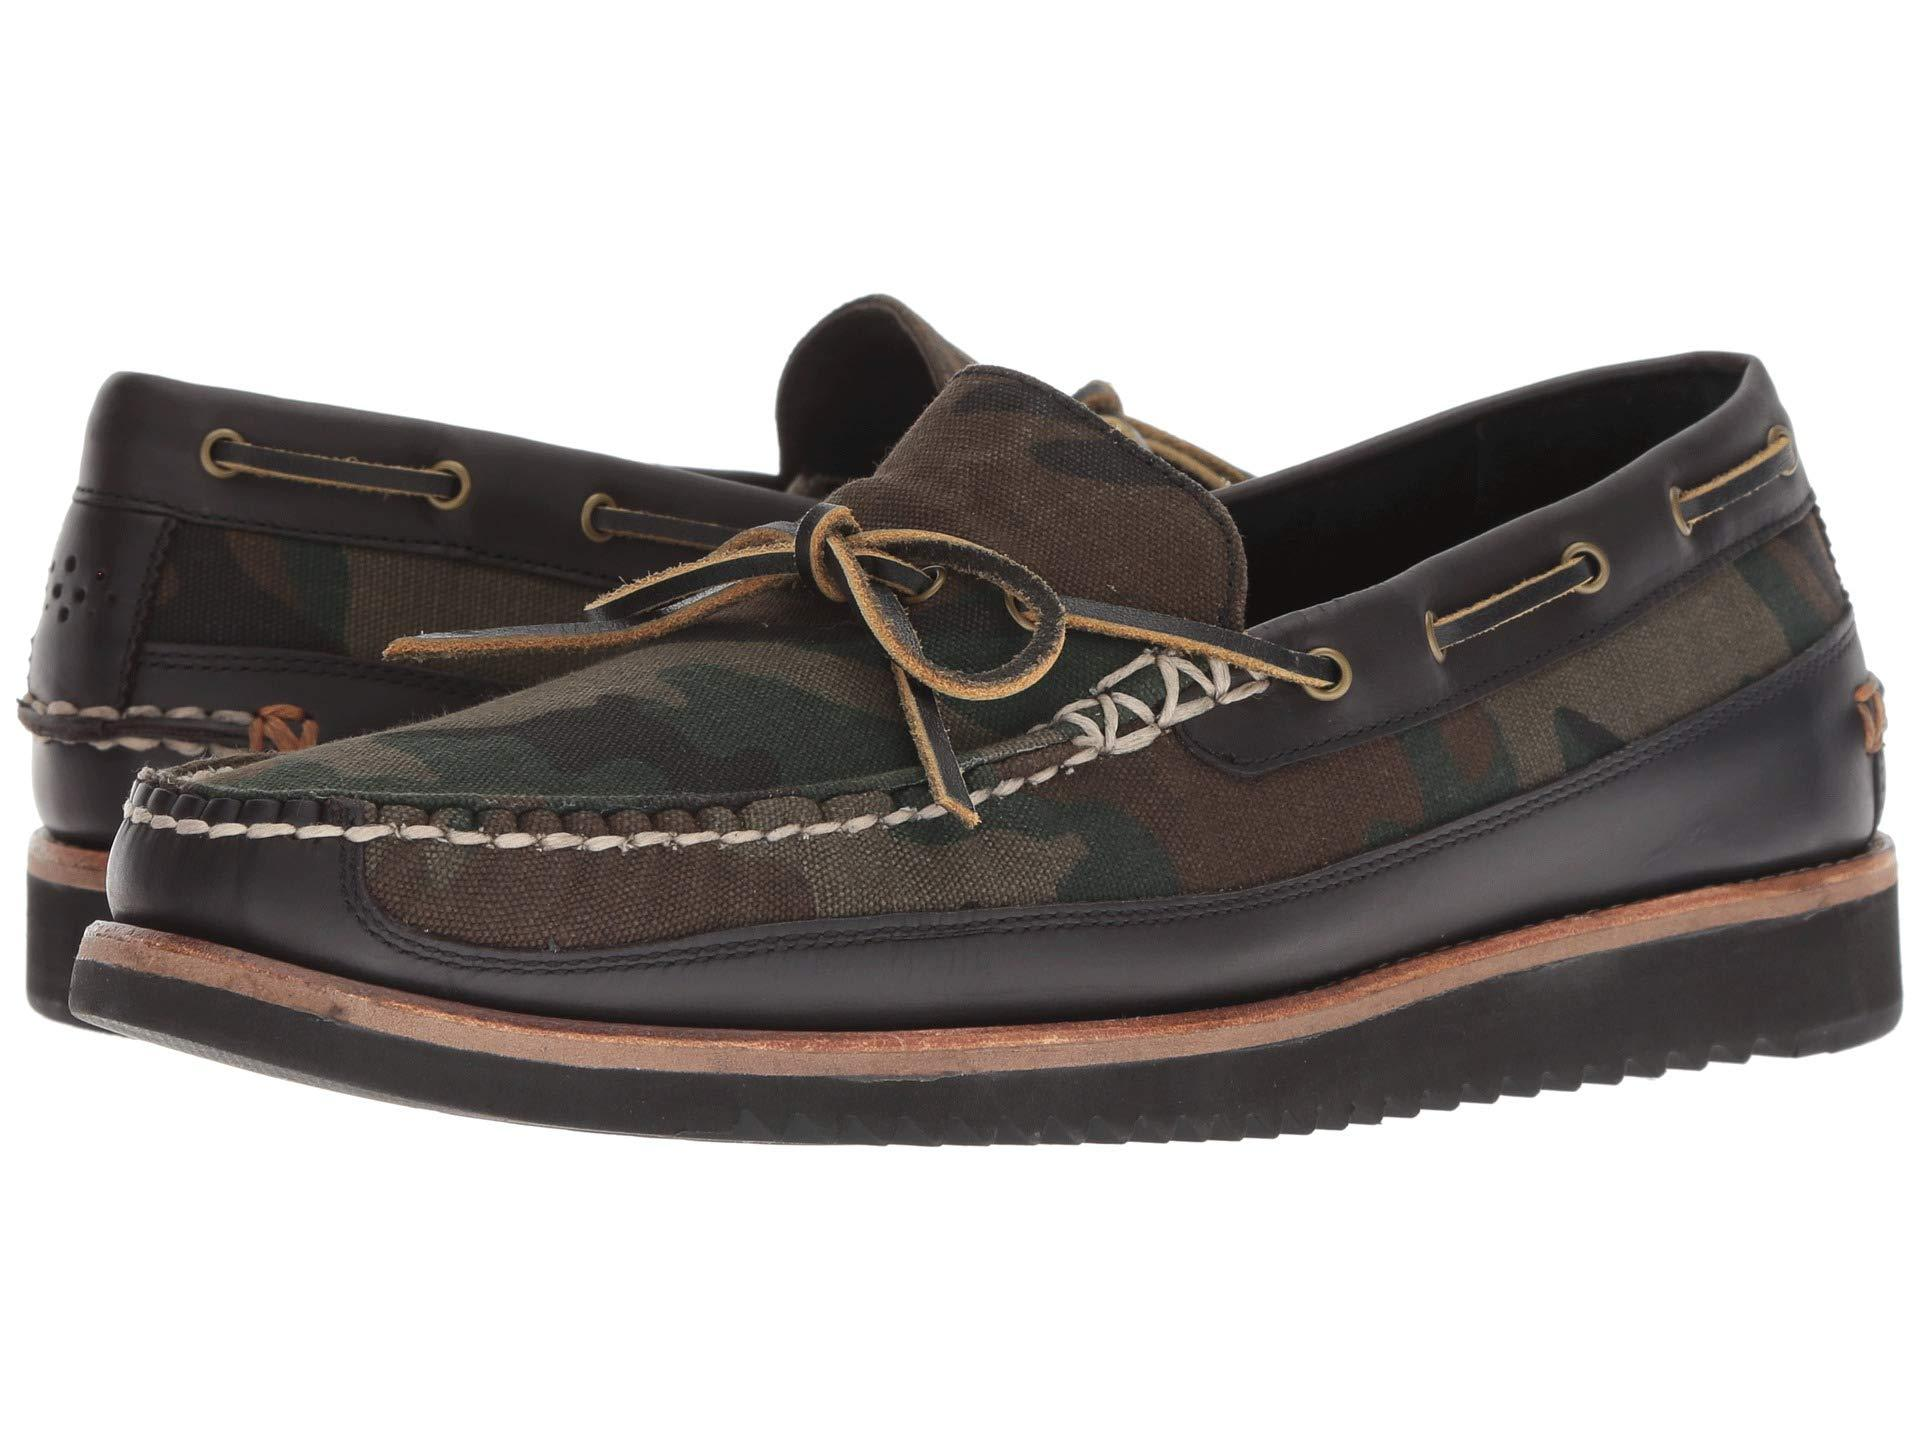 a044b0ab09c44 Lyst - Cole Haan Pinch Rugged Camp Moccasin Loafer in Black for Men ...